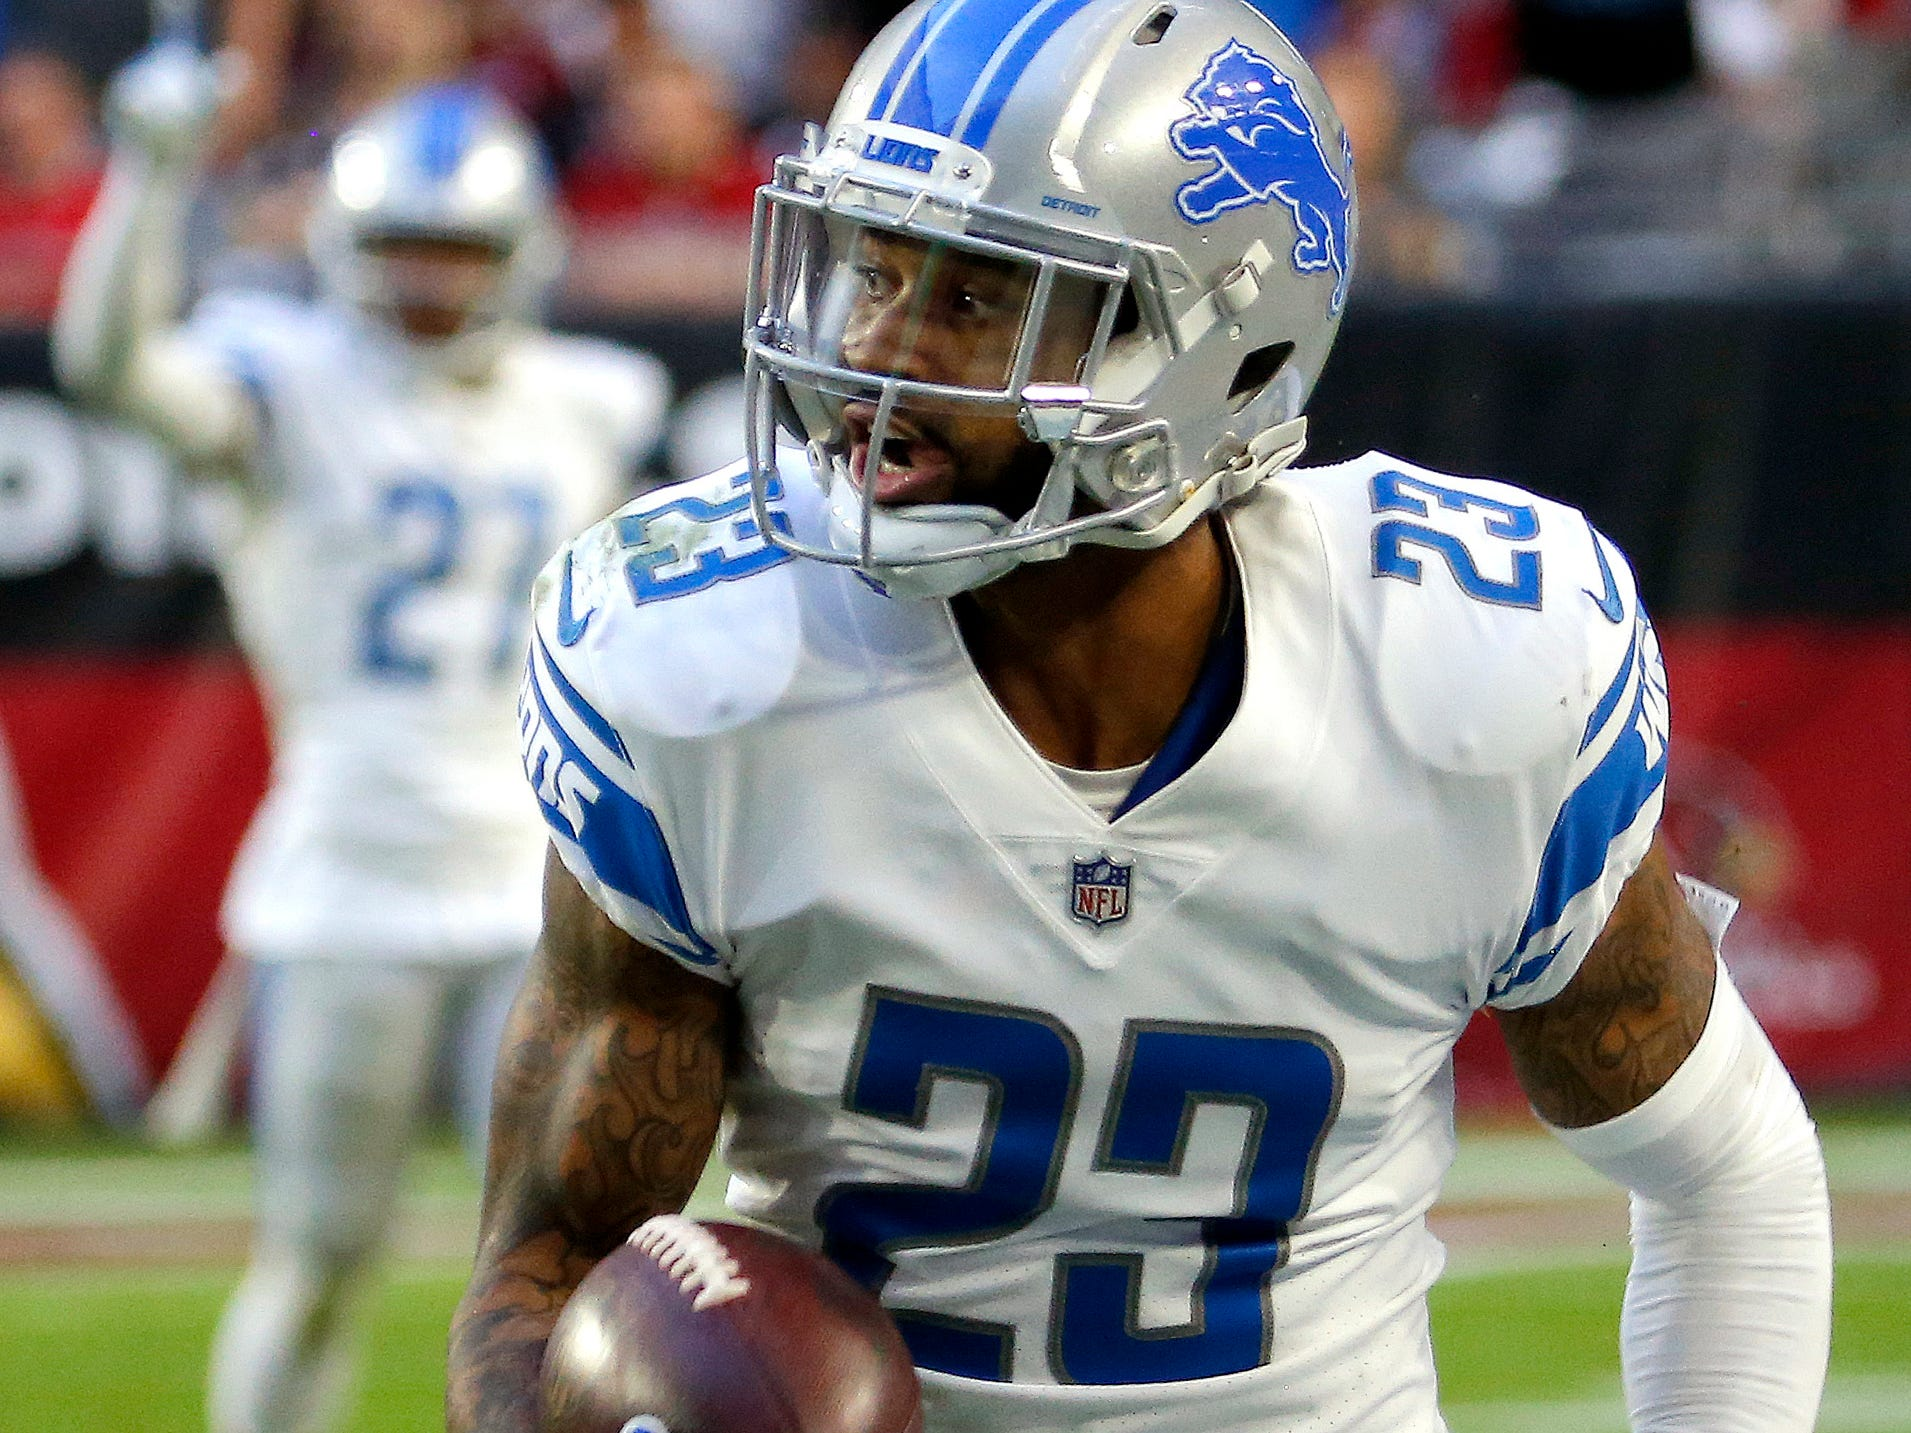 Detroit Lions cornerback Darius Slay (23) runs back his interception for a touchdown against the Arizona Cardinals during the second half of NFL football game, Sunday, Dec. 9, 2018, in Glendale, Ariz. Detroit defeated Arizona 17-3.